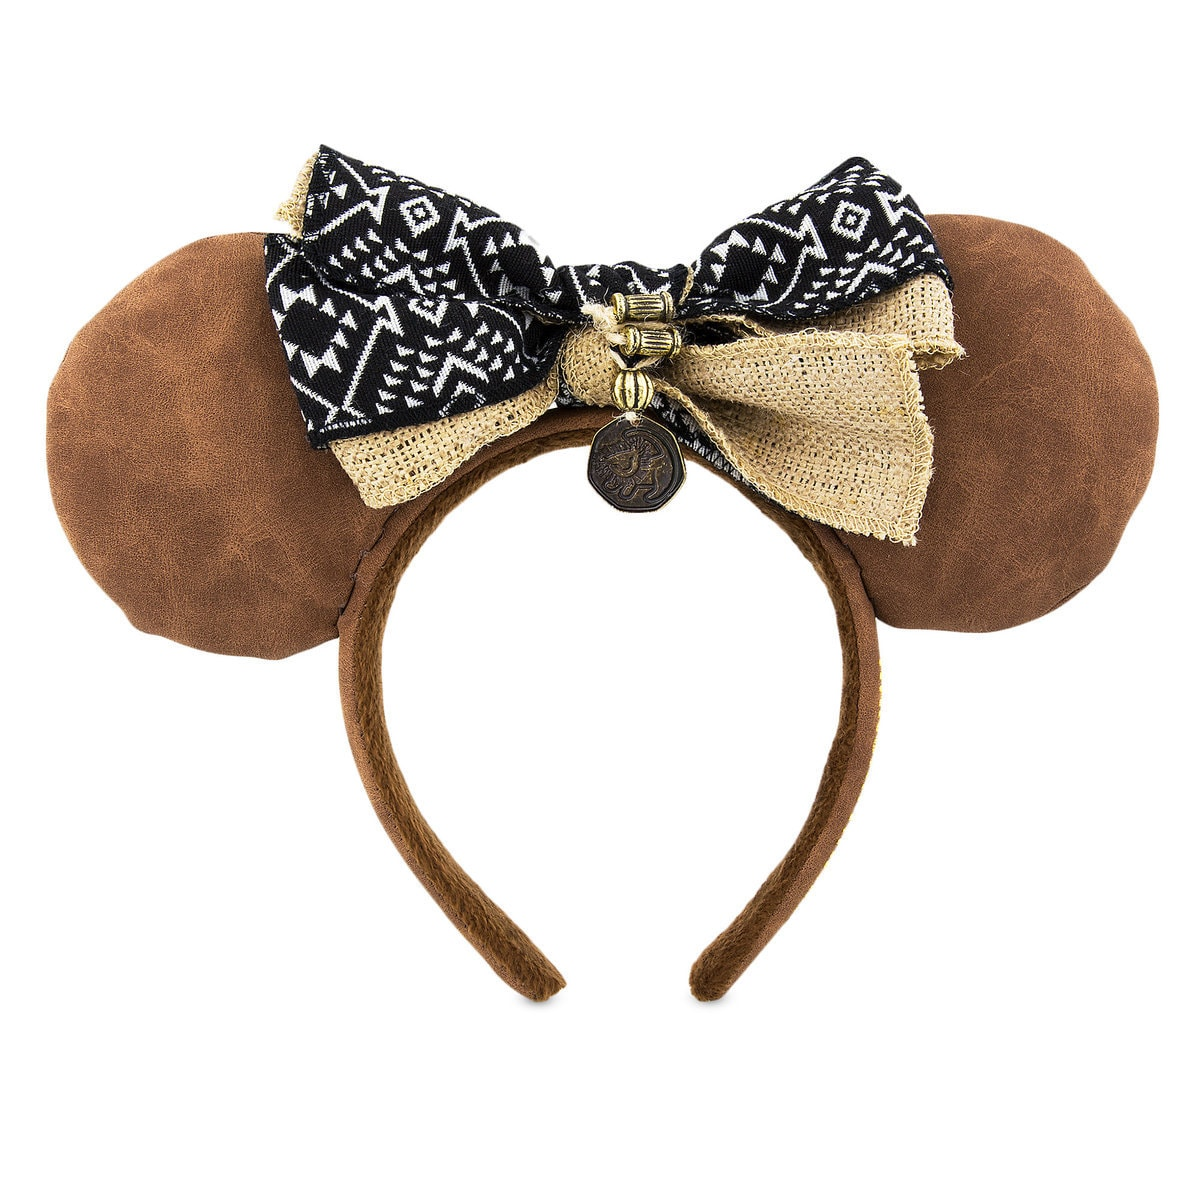 e36fdd0692d8d Product Image of The Lion King Ear Headband - Disney s Animal Kingdom   1